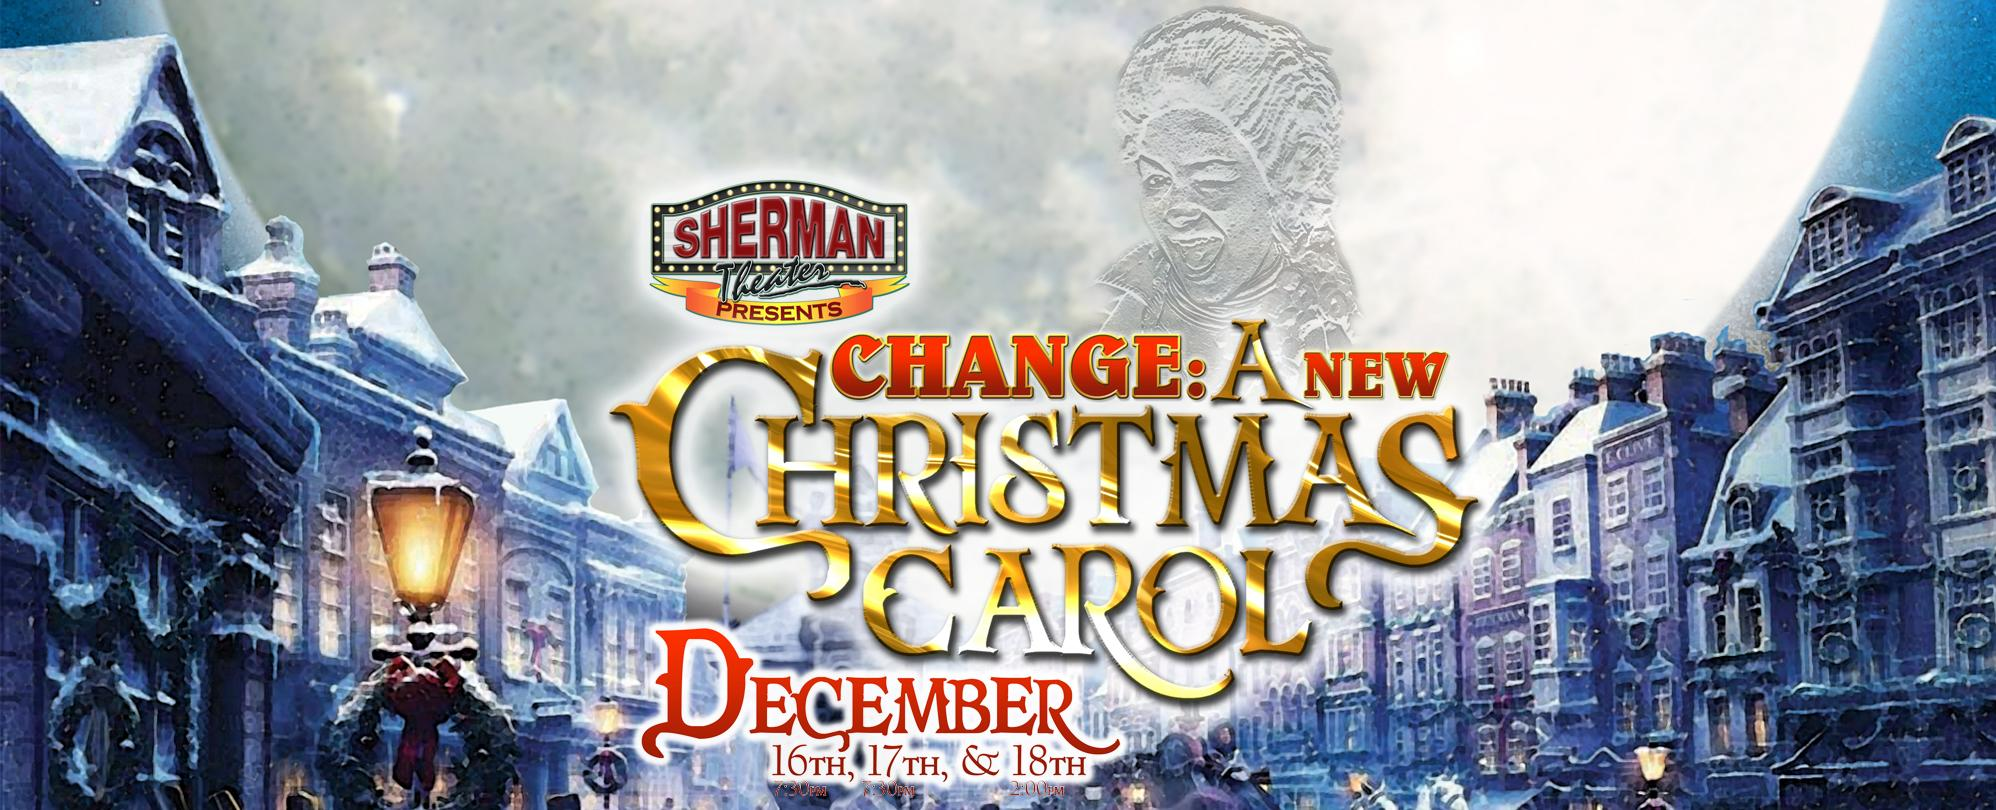 Change: A New Christmas Carol - Sunday